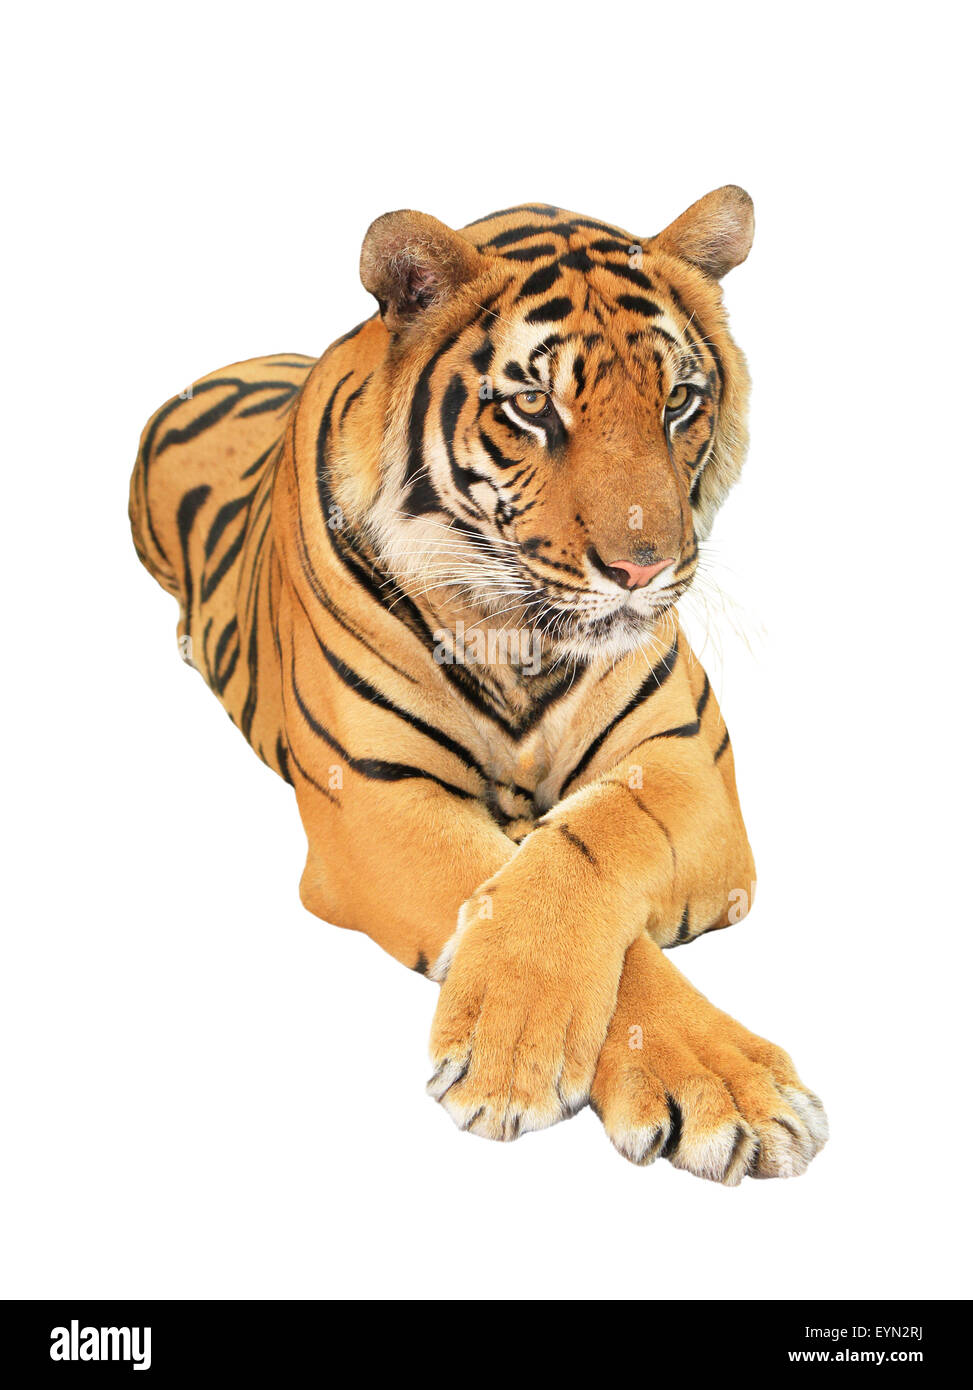 Tiger isolated on white background - Stock Image